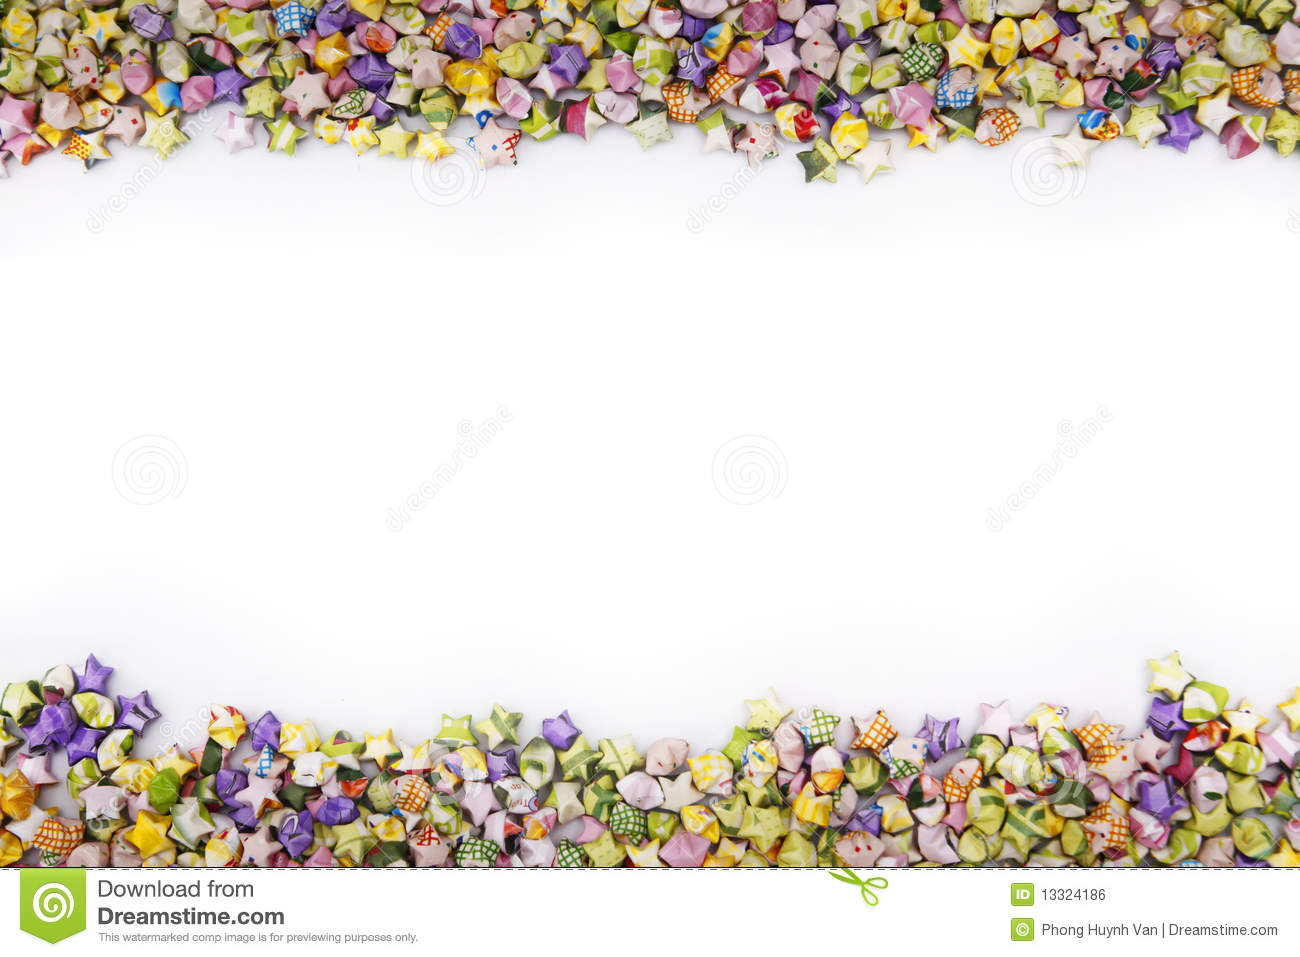 Cute Border Royalty Free Stock Image - Image: 13324186